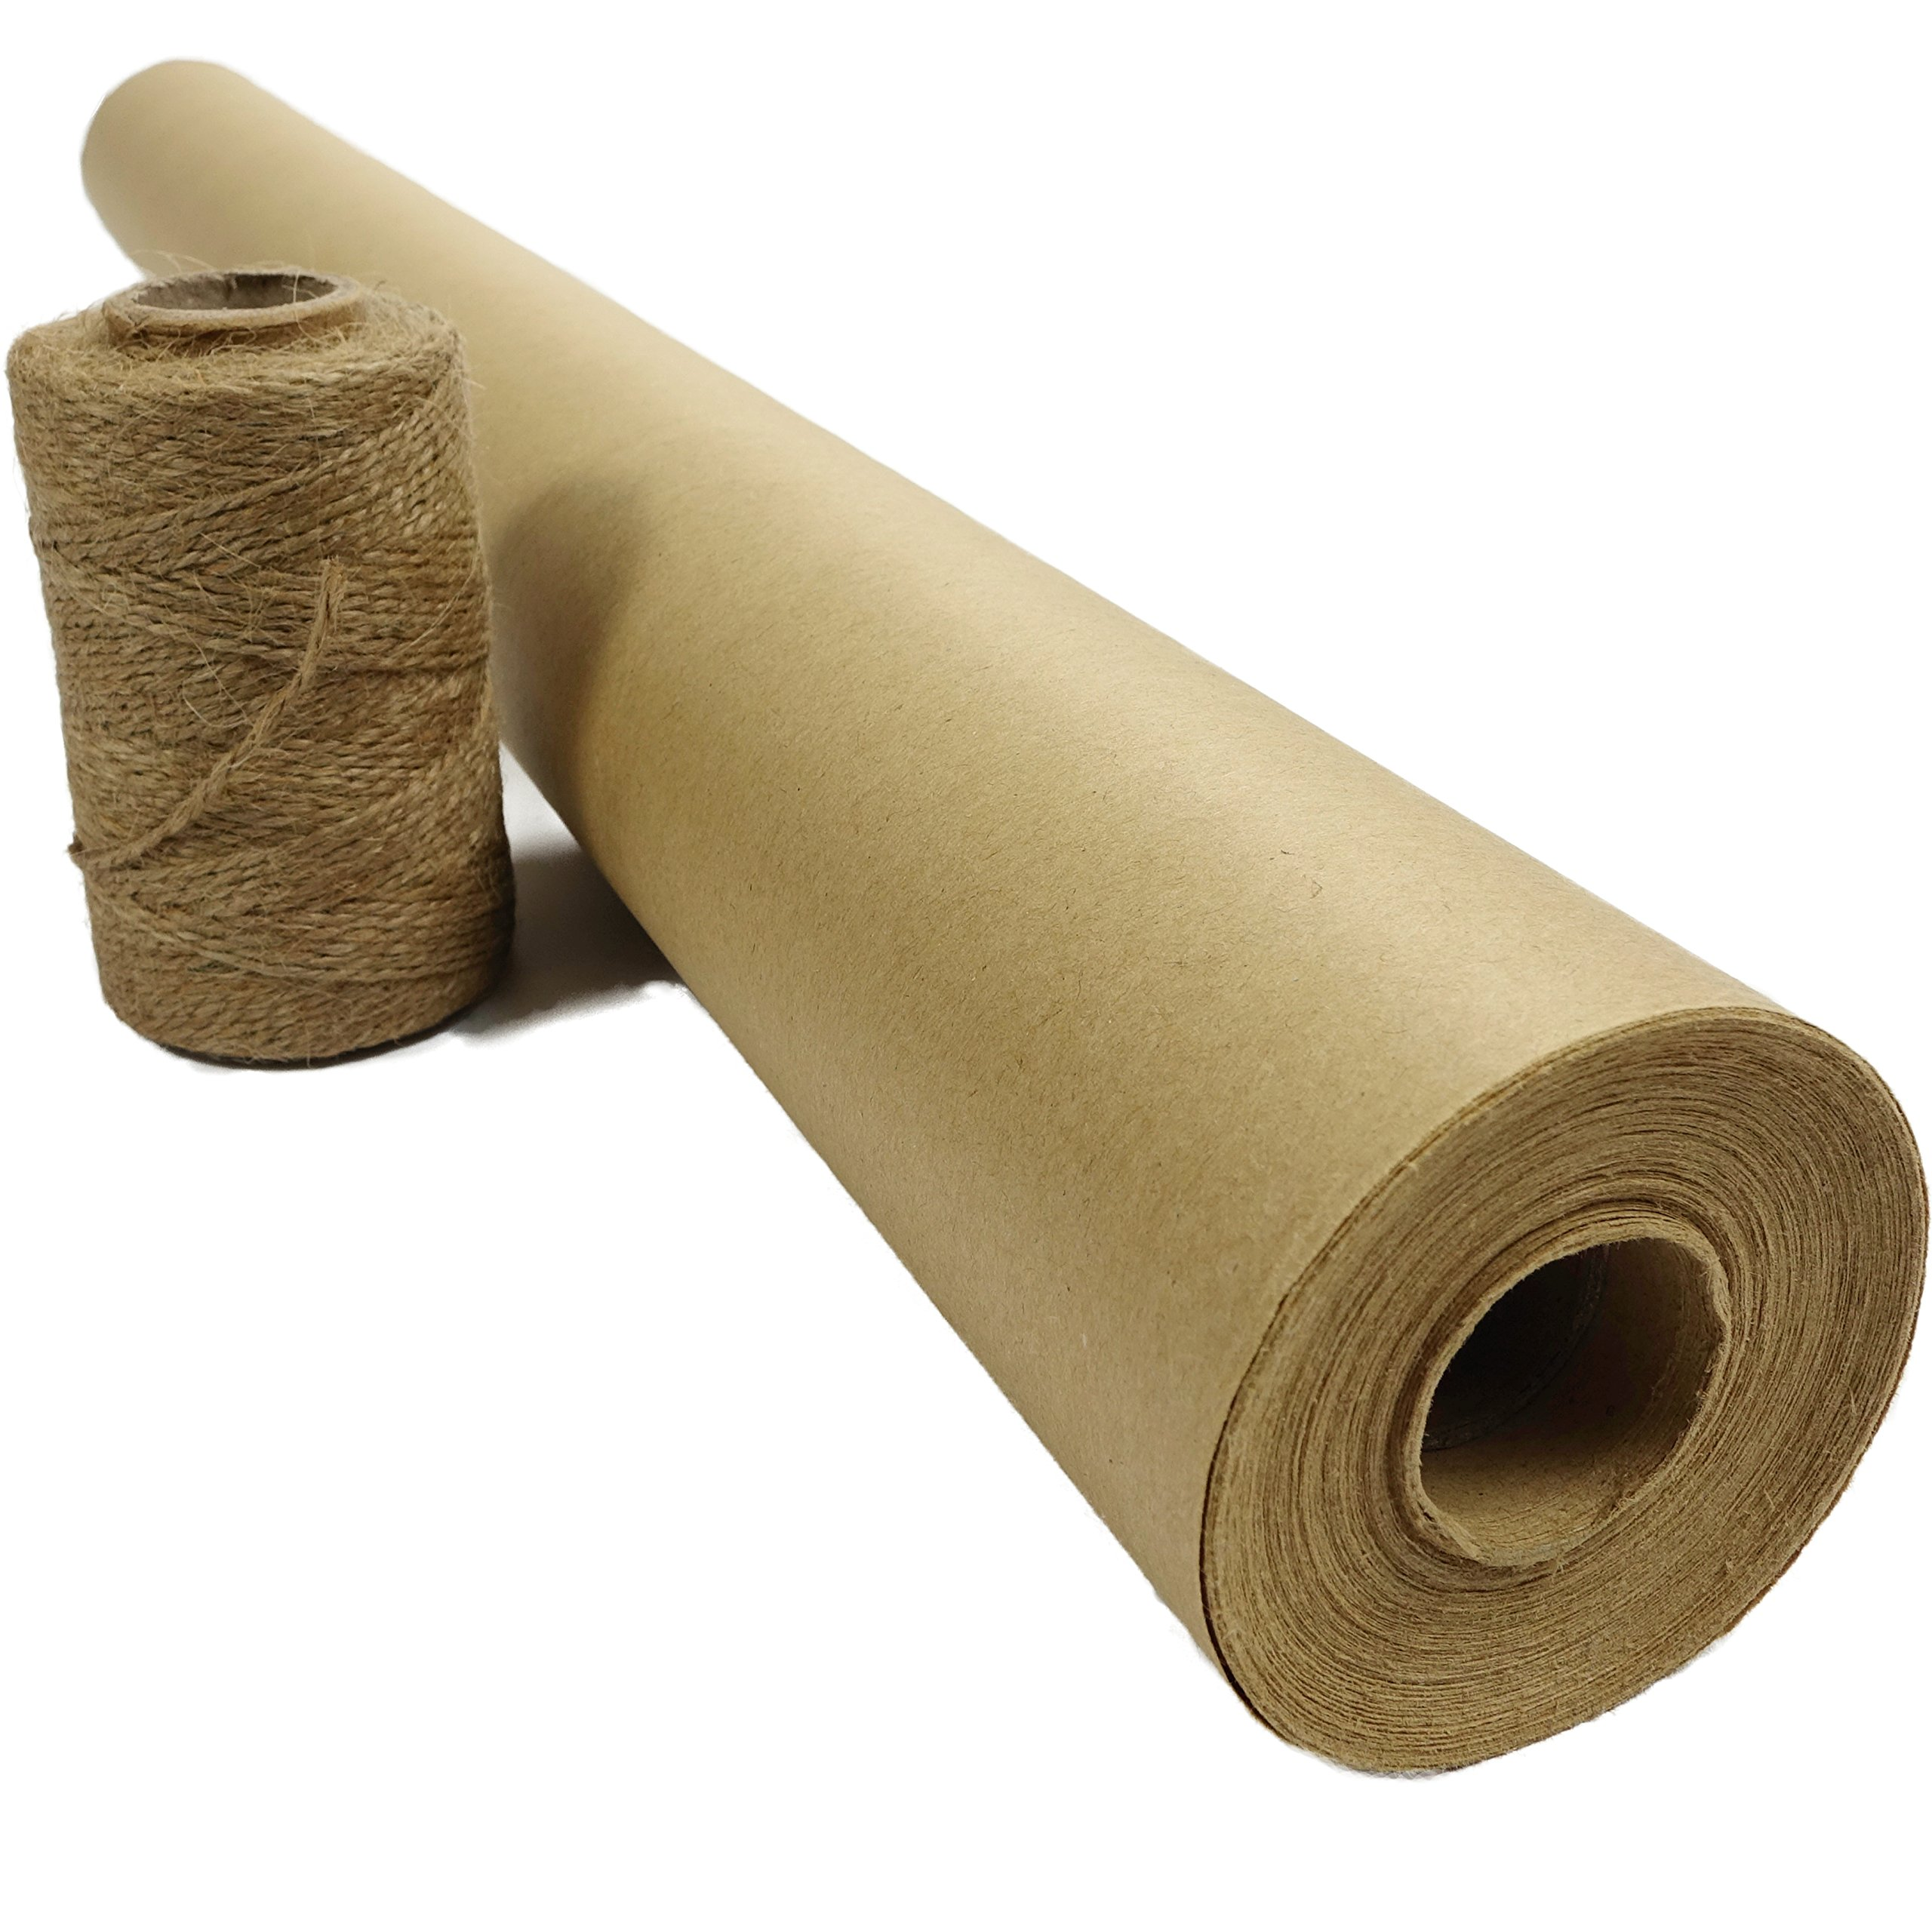 Brown Kraft Paper Roll for Gift Wrapping by Blami | Jumbo 30'' x 1200'' (100 ft) XL thickness 50# recycled Made in USA | with Jute Twine | shipping, packing, table runner, dunnage parcel, postal craft